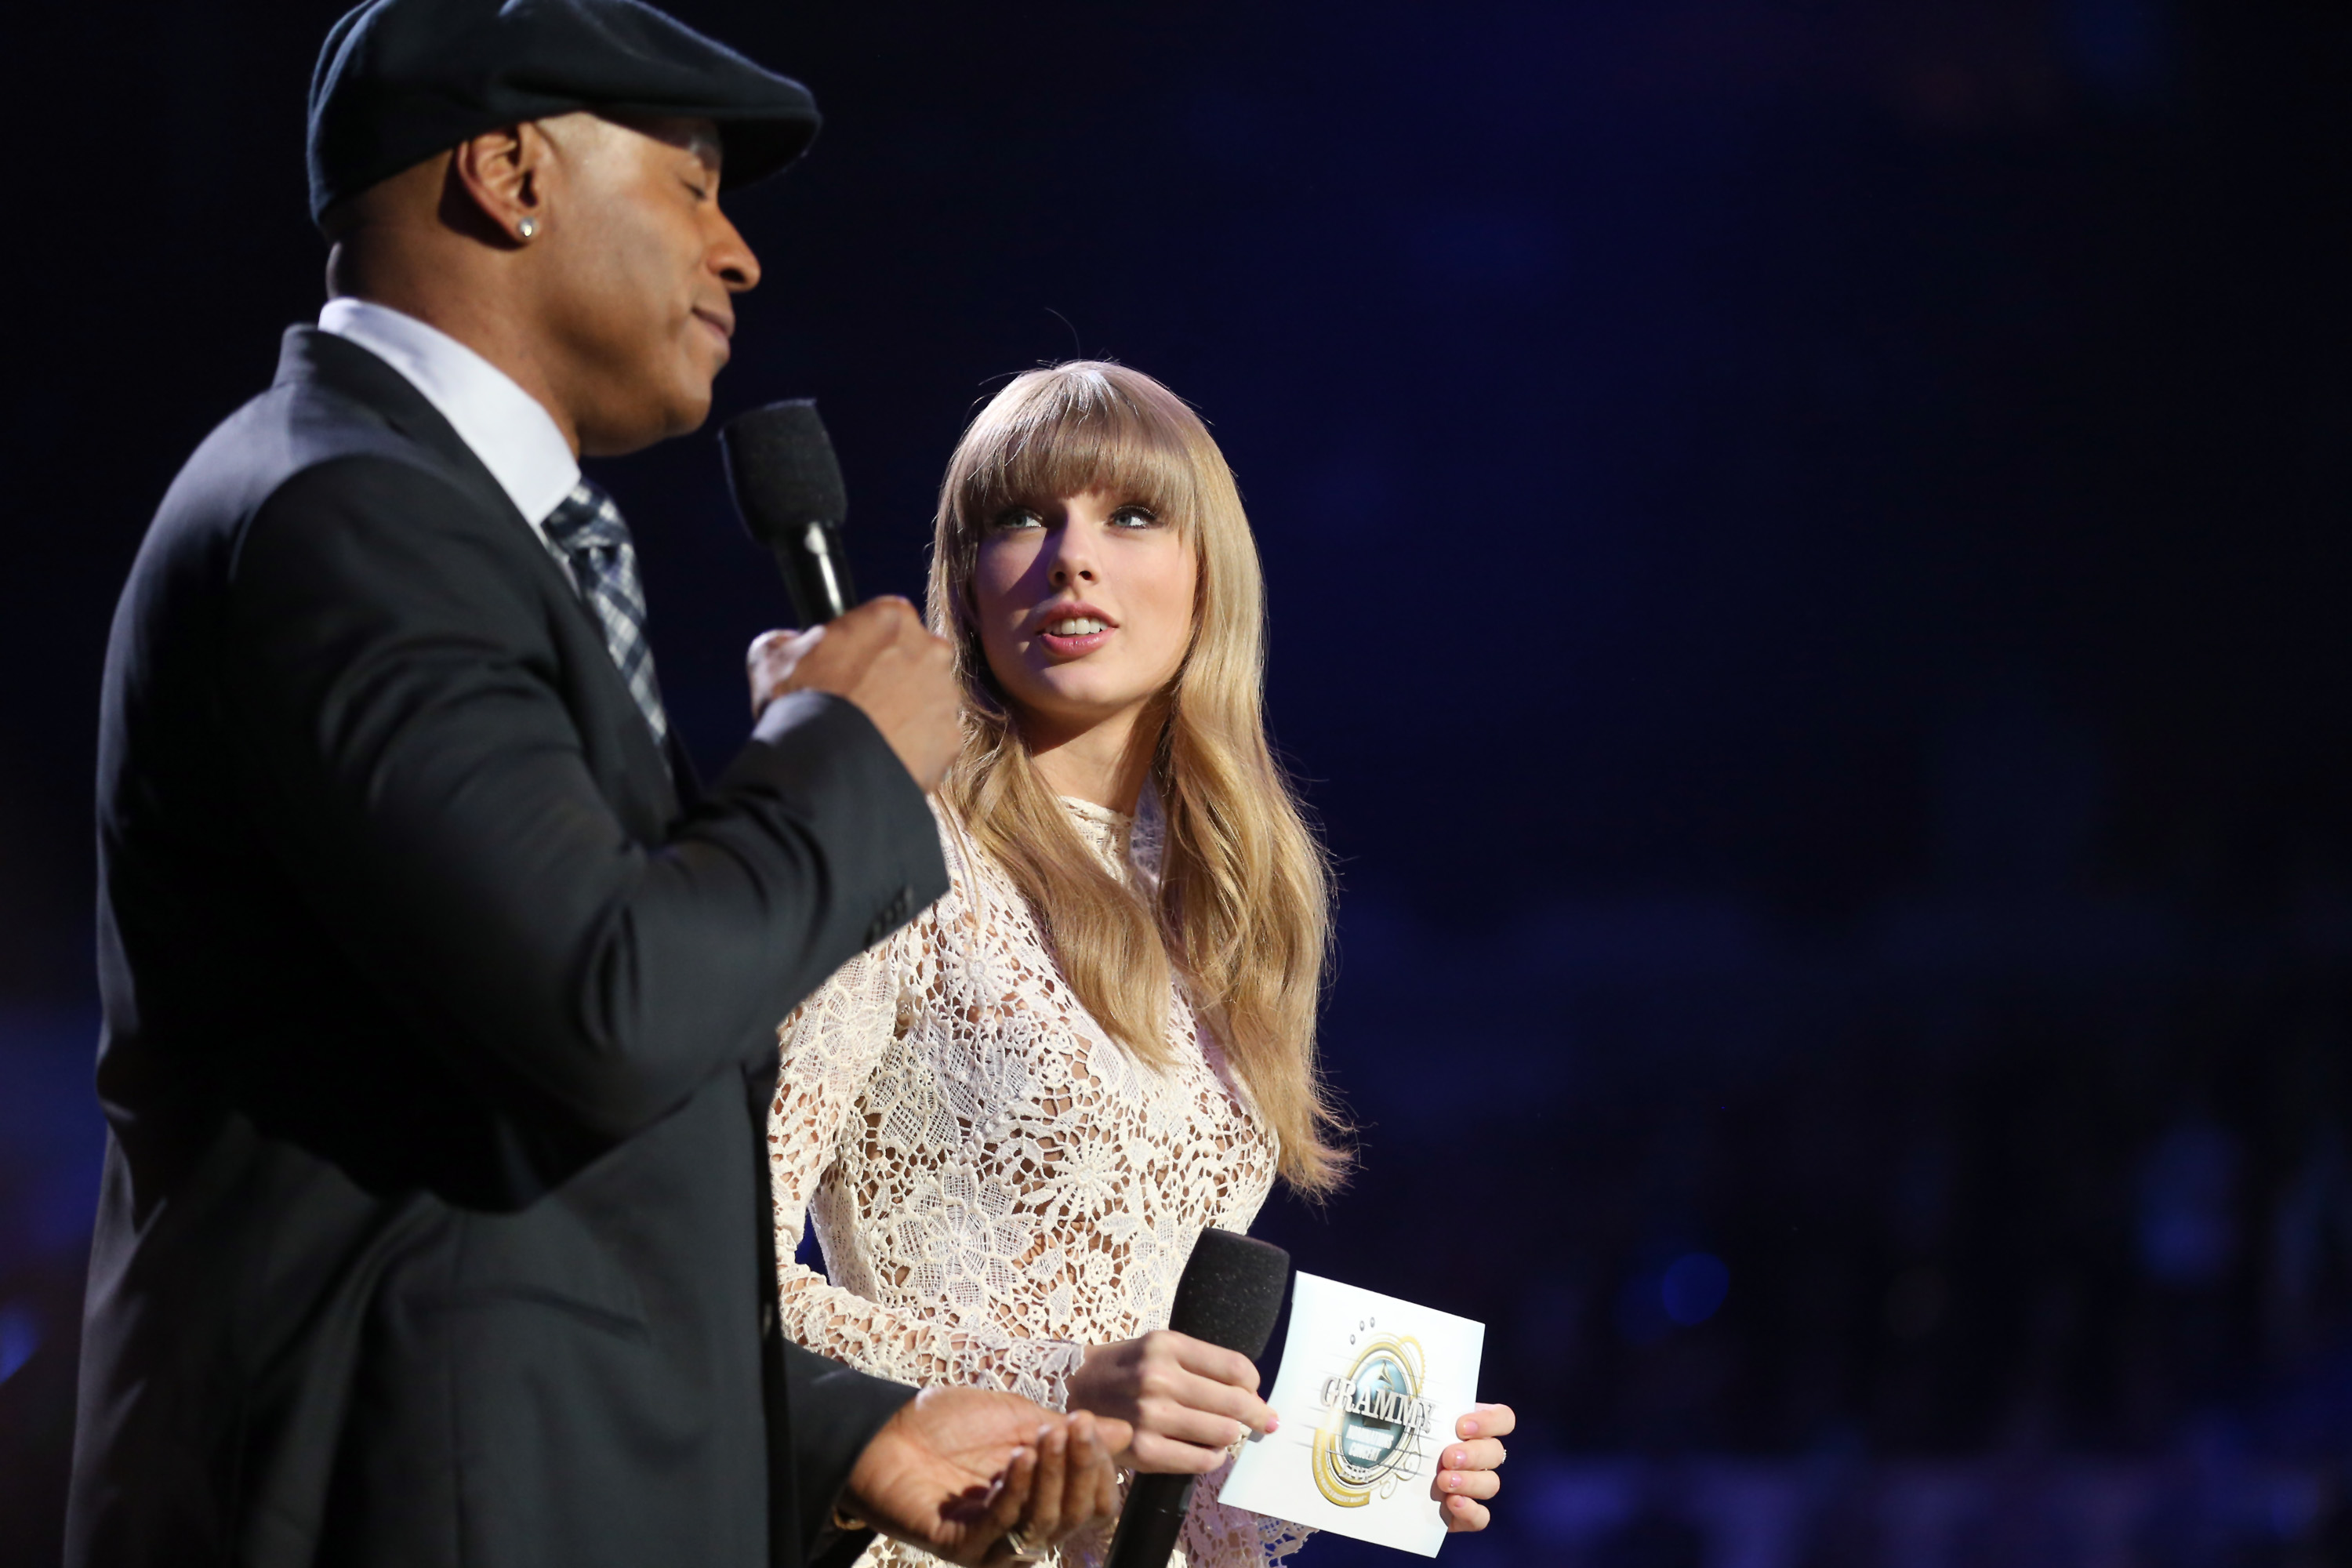 Taylor Swift was on stage with LL Cool J in Nashville.